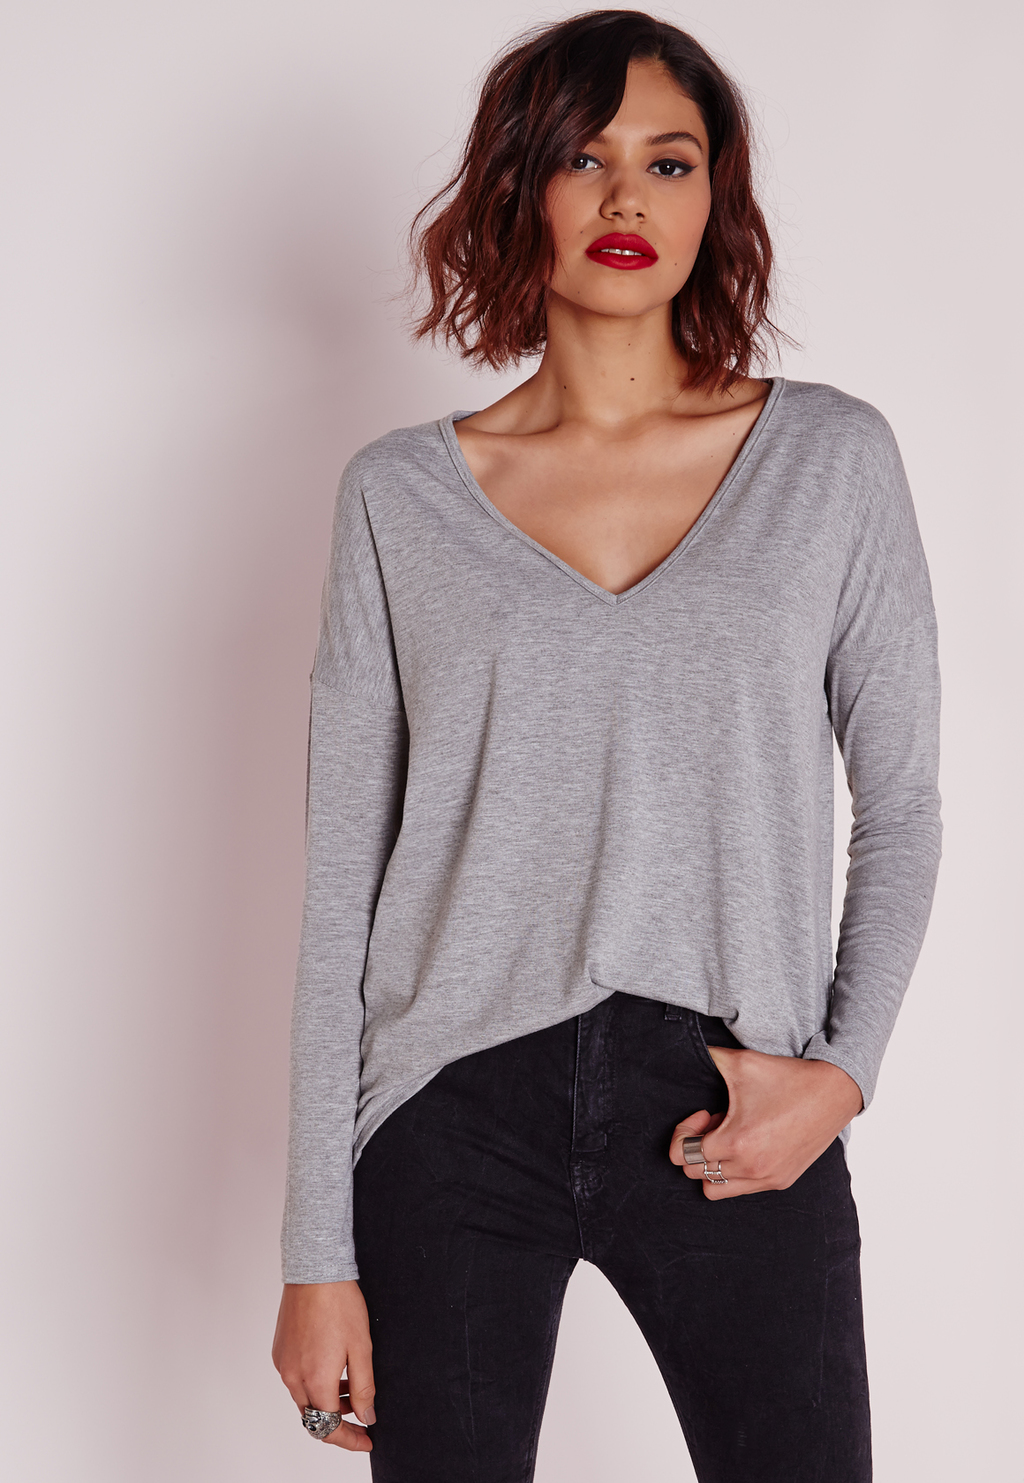 Long Sleeve Boyfriend V Neck T Shirt Grey Marl, Grey - neckline: low v-neck; pattern: plain; style: t-shirt; predominant colour: mid grey; occasions: casual; length: standard; fibres: viscose/rayon - stretch; fit: body skimming; sleeve length: long sleeve; sleeve style: standard; pattern type: fabric; texture group: jersey - stretchy/drapey; season: a/w 2015; wardrobe: basic